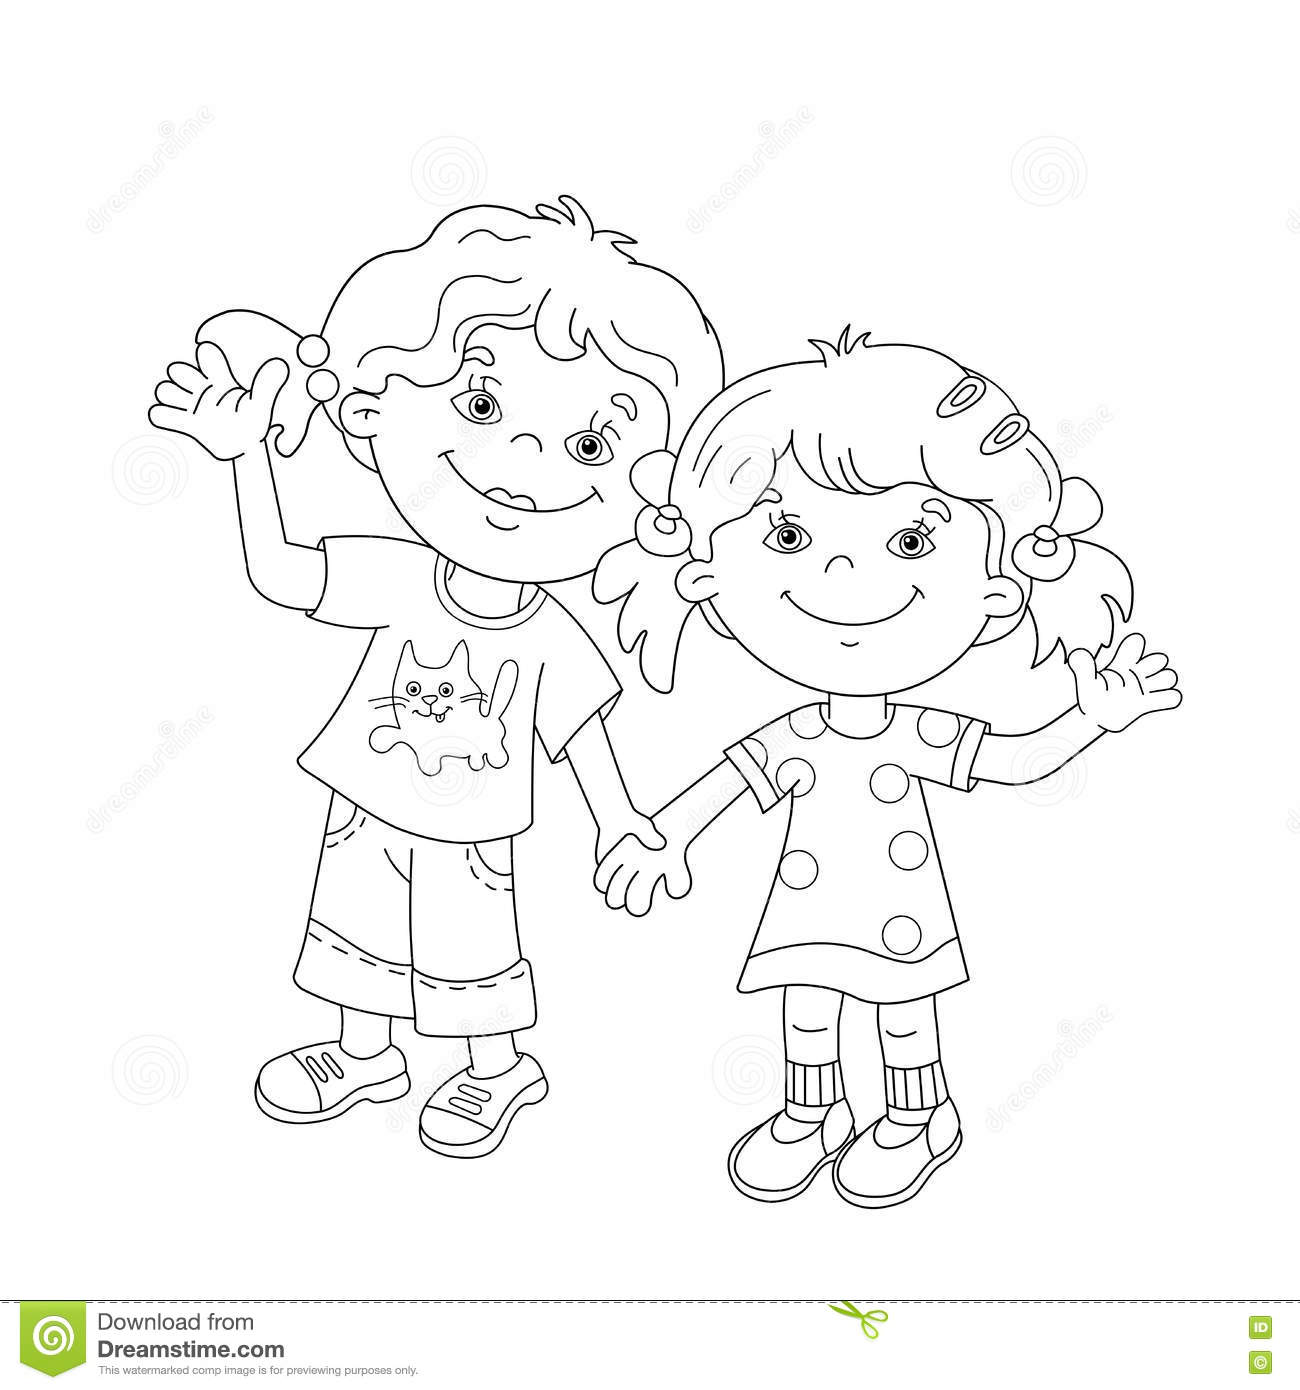 coloring page outline of cartoon girls holding hands